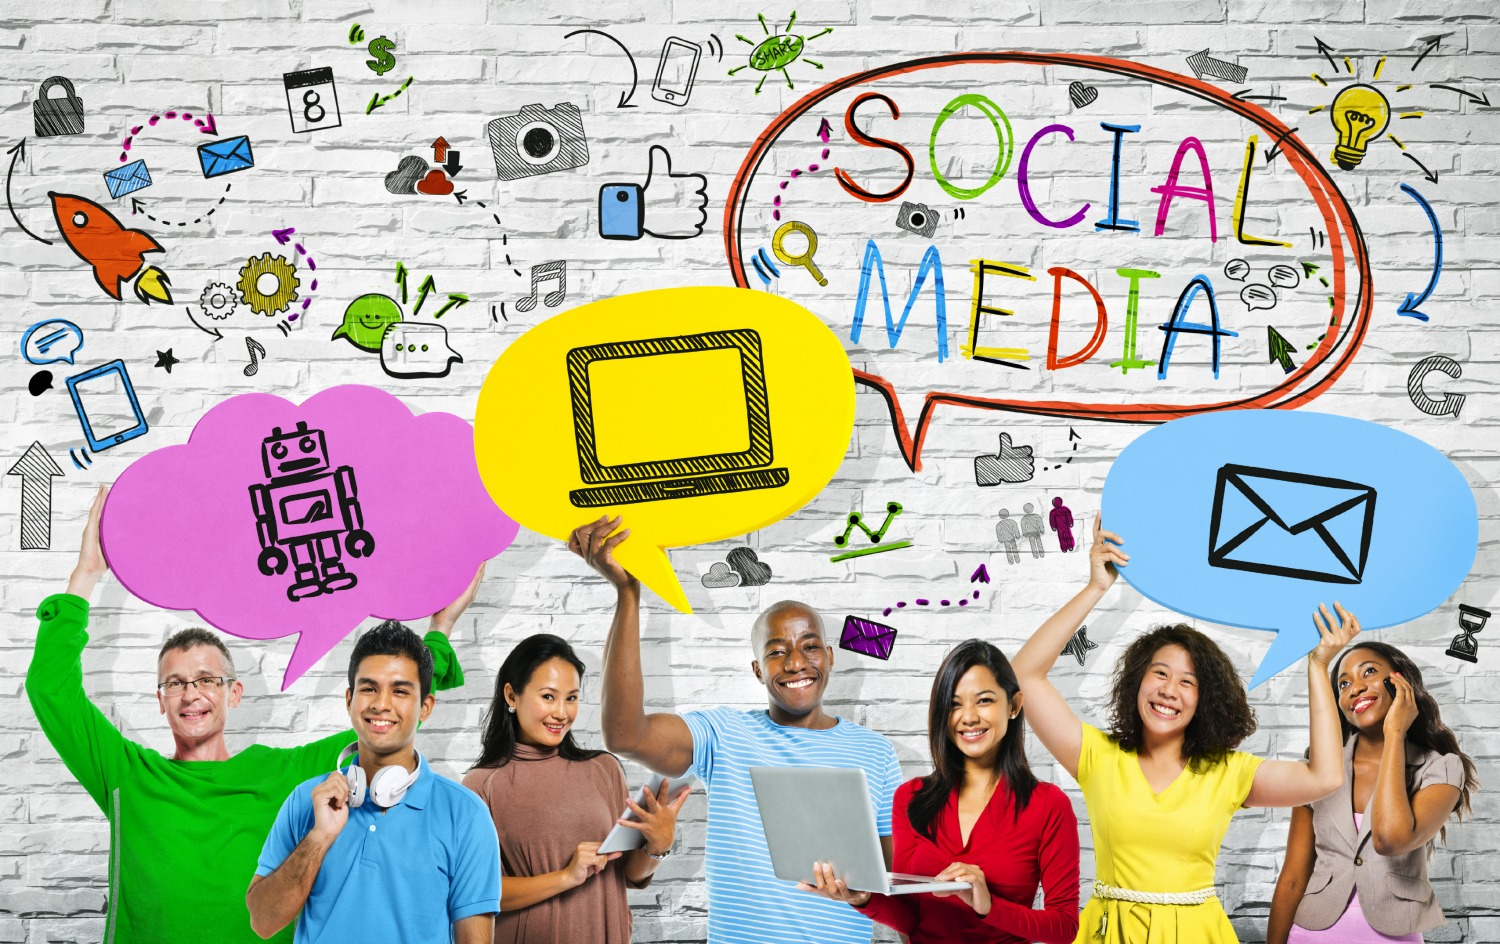 the effects of media on society Wrong choices may have a negative impact on society, especially on children and teenagers however, if used wisely, media proves to be a boon it gives us a platform to voice our opinions on social and political issues.